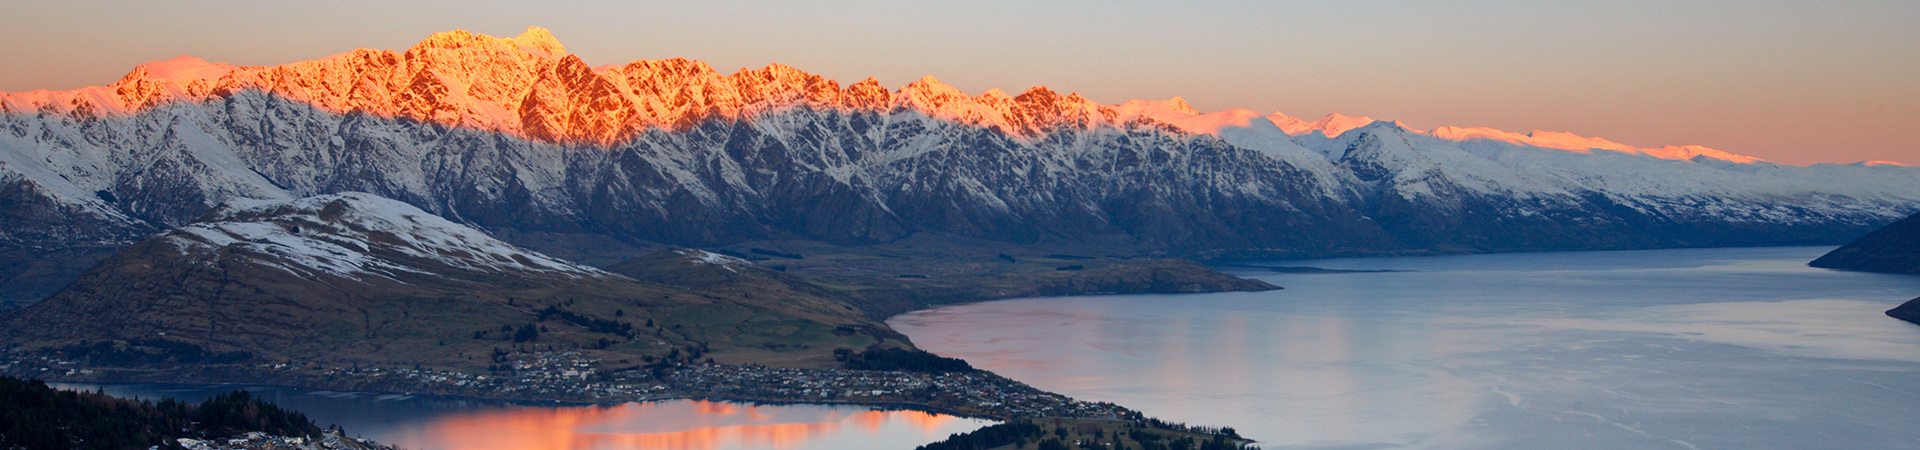 Sunrising over the Remarkables mountains